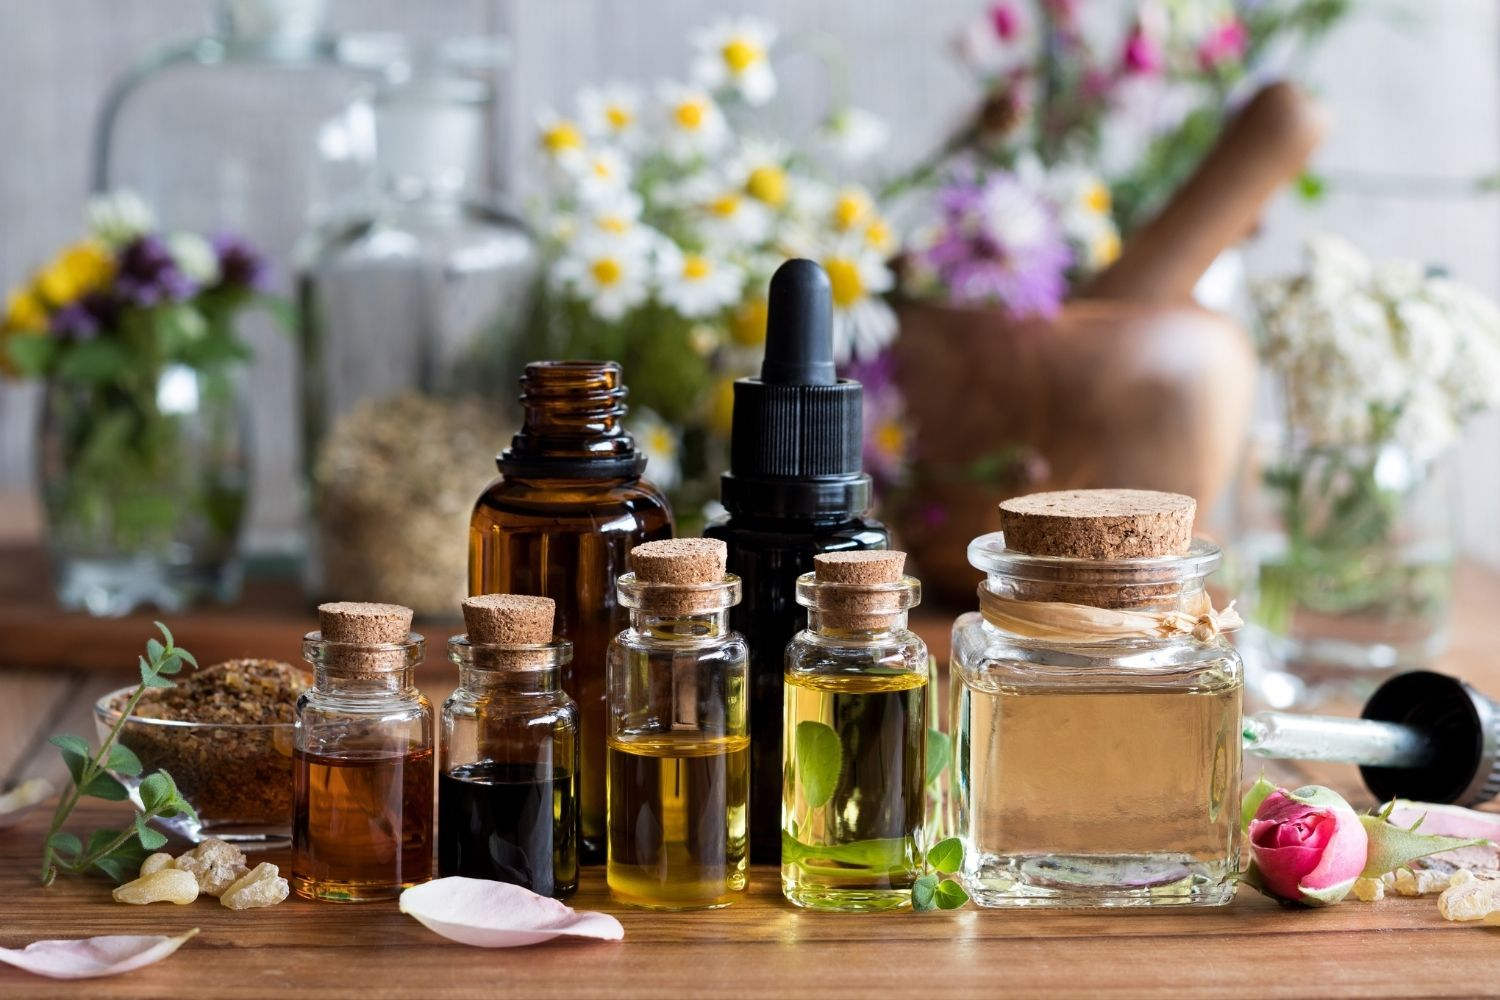 Transform your massage business by using aromatherapy essential oils and see incredible results with your clients!